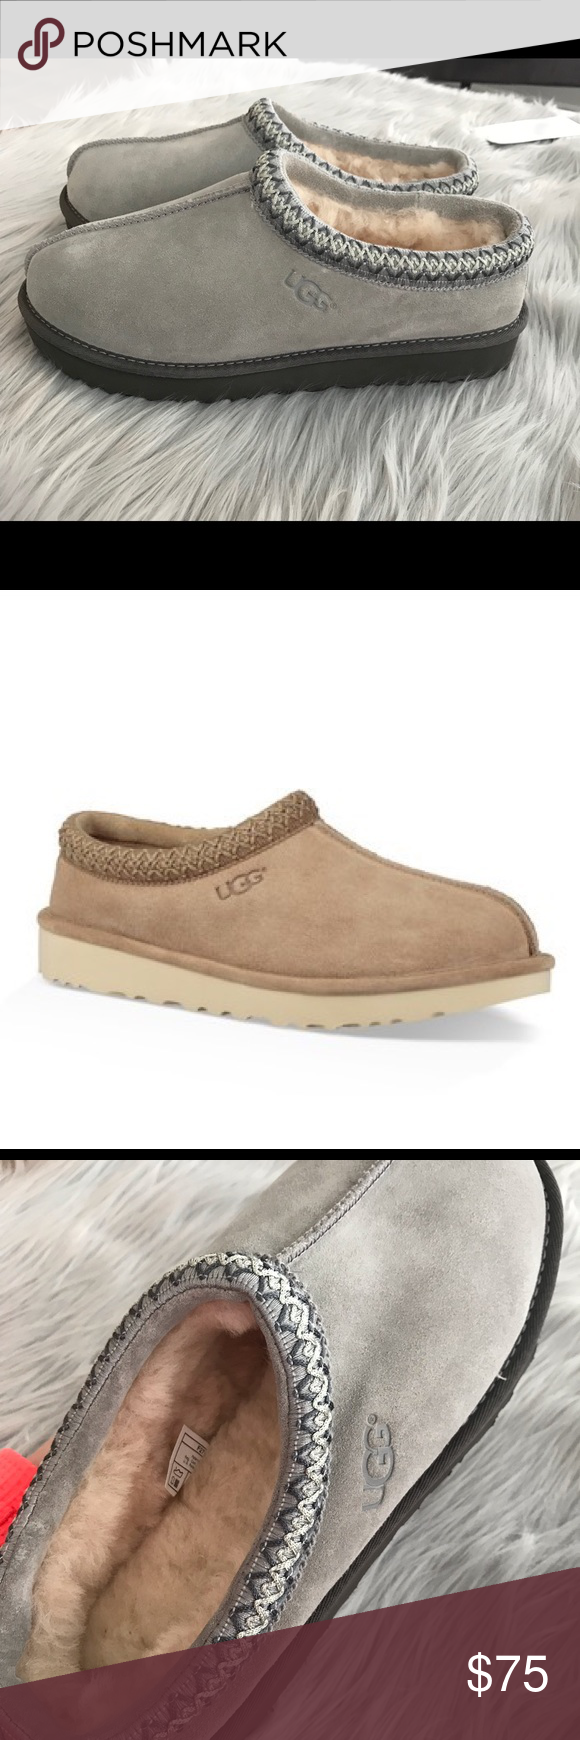 a1505e8064 Ugg Tasman Pinnacle Genuine Sheepskin Line Slipper NEW UGG SLIPPERS WITHOUT  TAG. Sizing  True to size. Whole sizes only  for 1 2 sizes